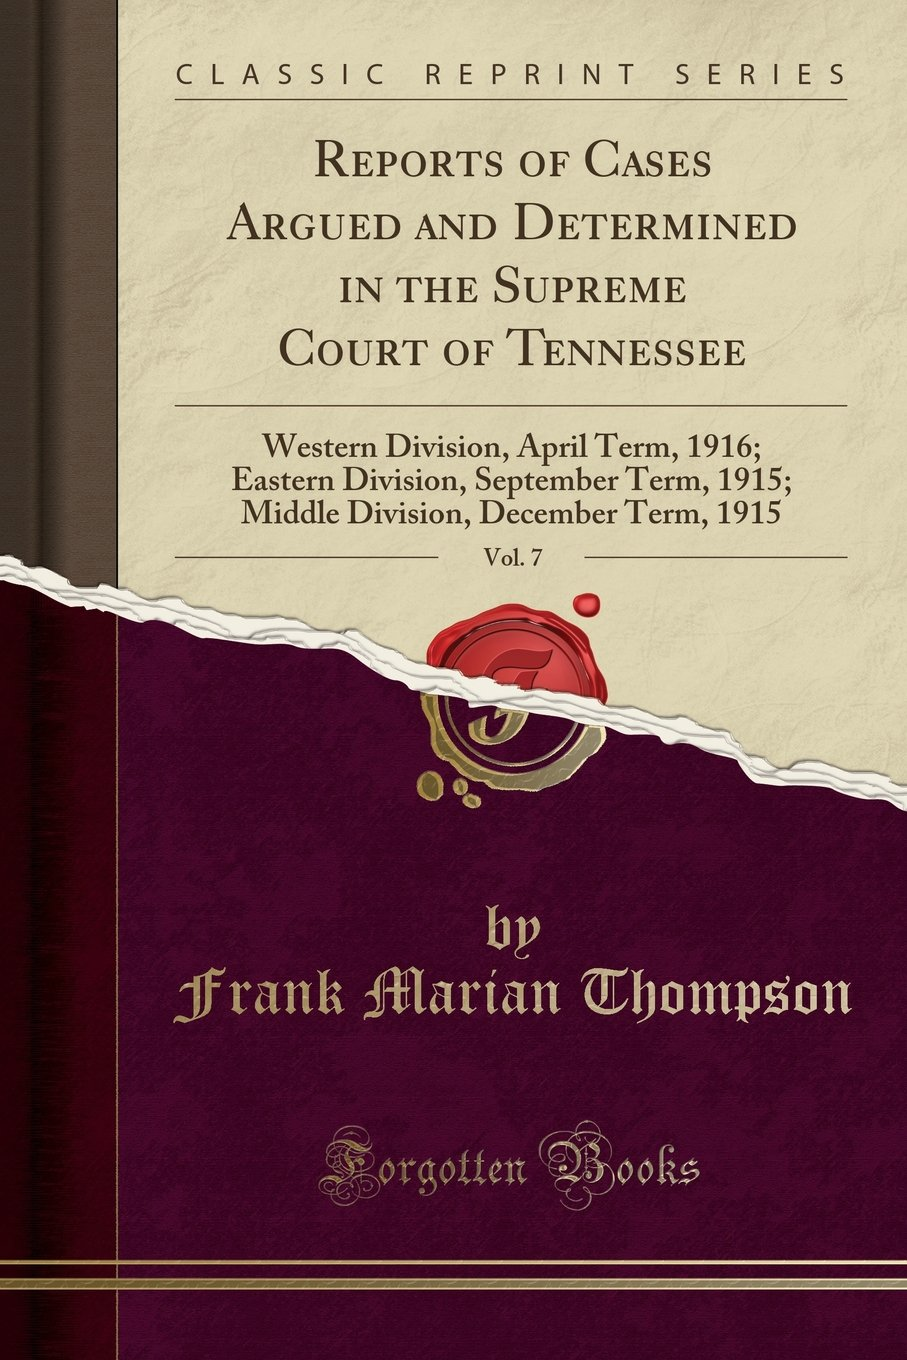 Reports of Cases Argued and Determined in the Supreme Court of Tennessee, Vol. 7: Western Division, April Term, 1916; Eastern Division, September ... December Term, 1915 (Classic Reprint) pdf epub